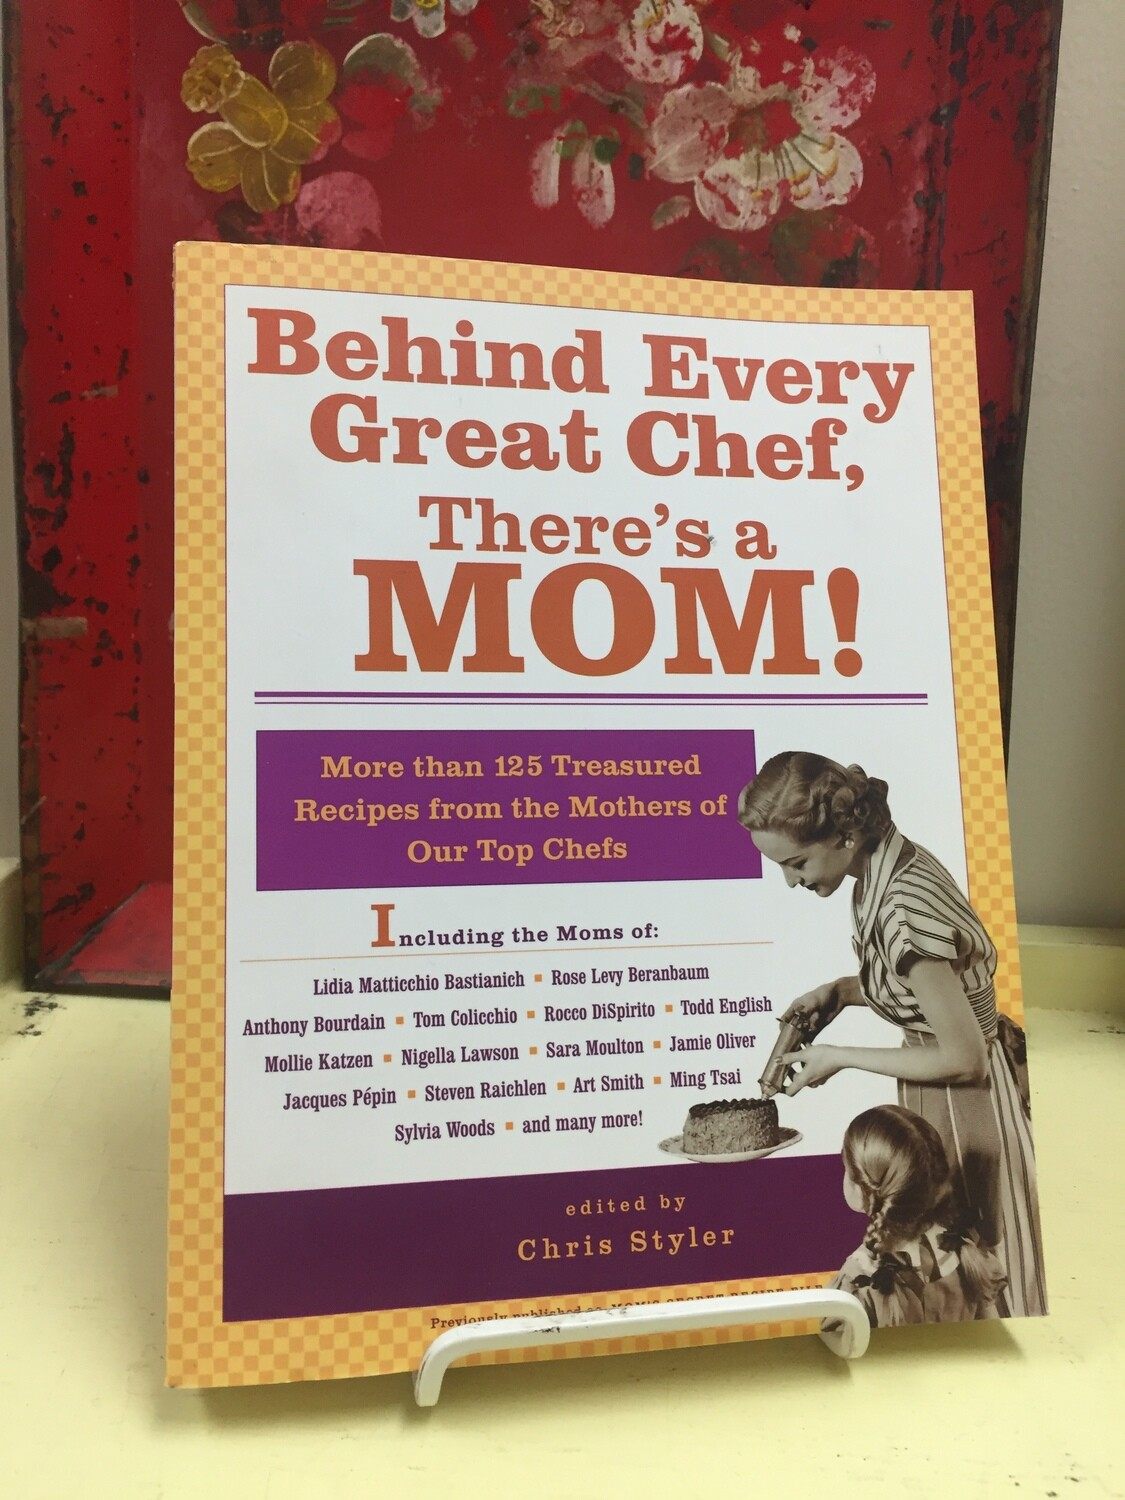 Behind Every Great Chef, There's a Mom